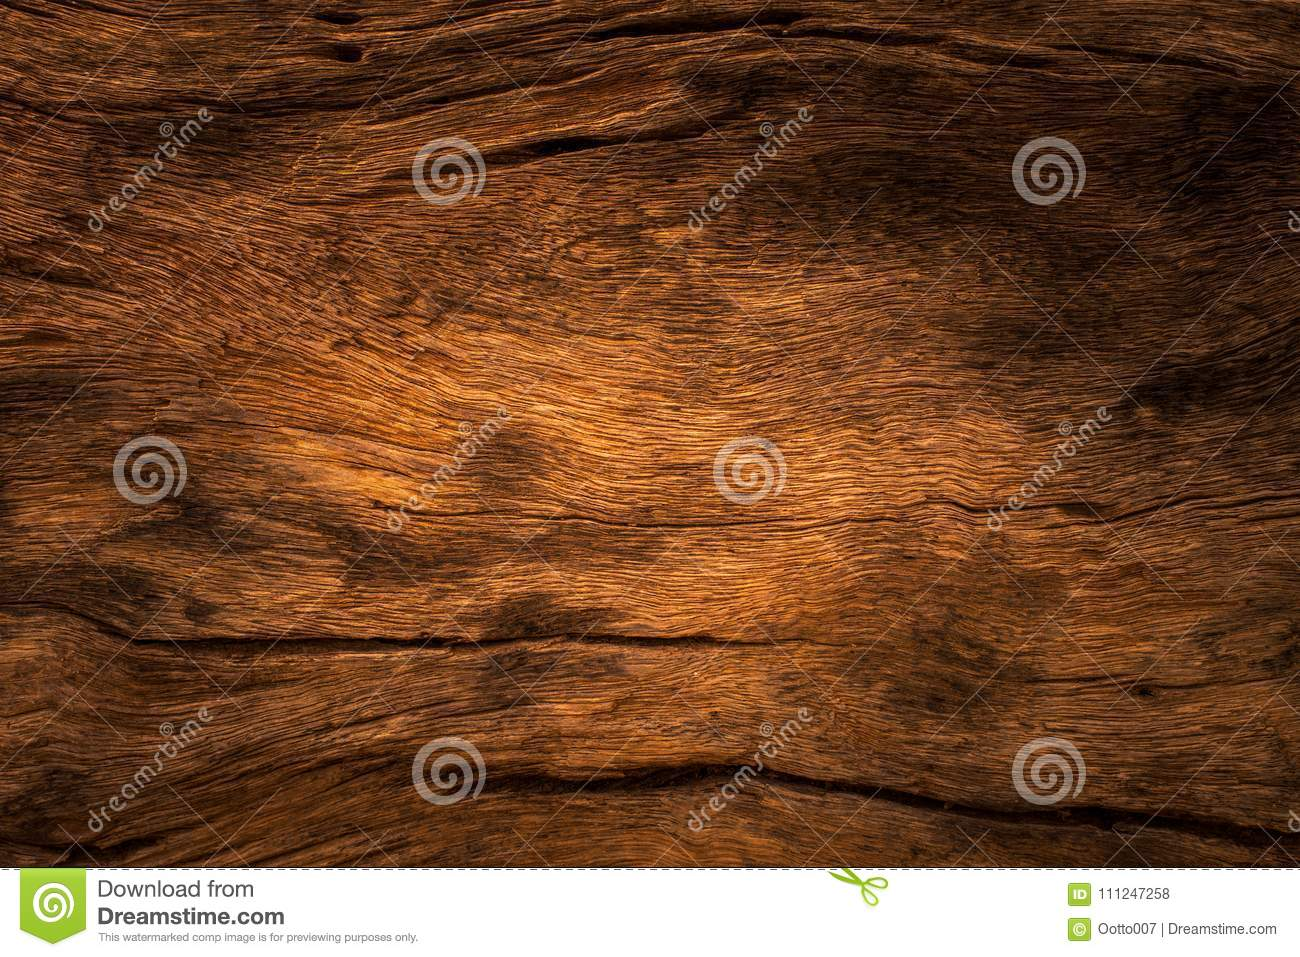 Vintage wooden wall texture surface